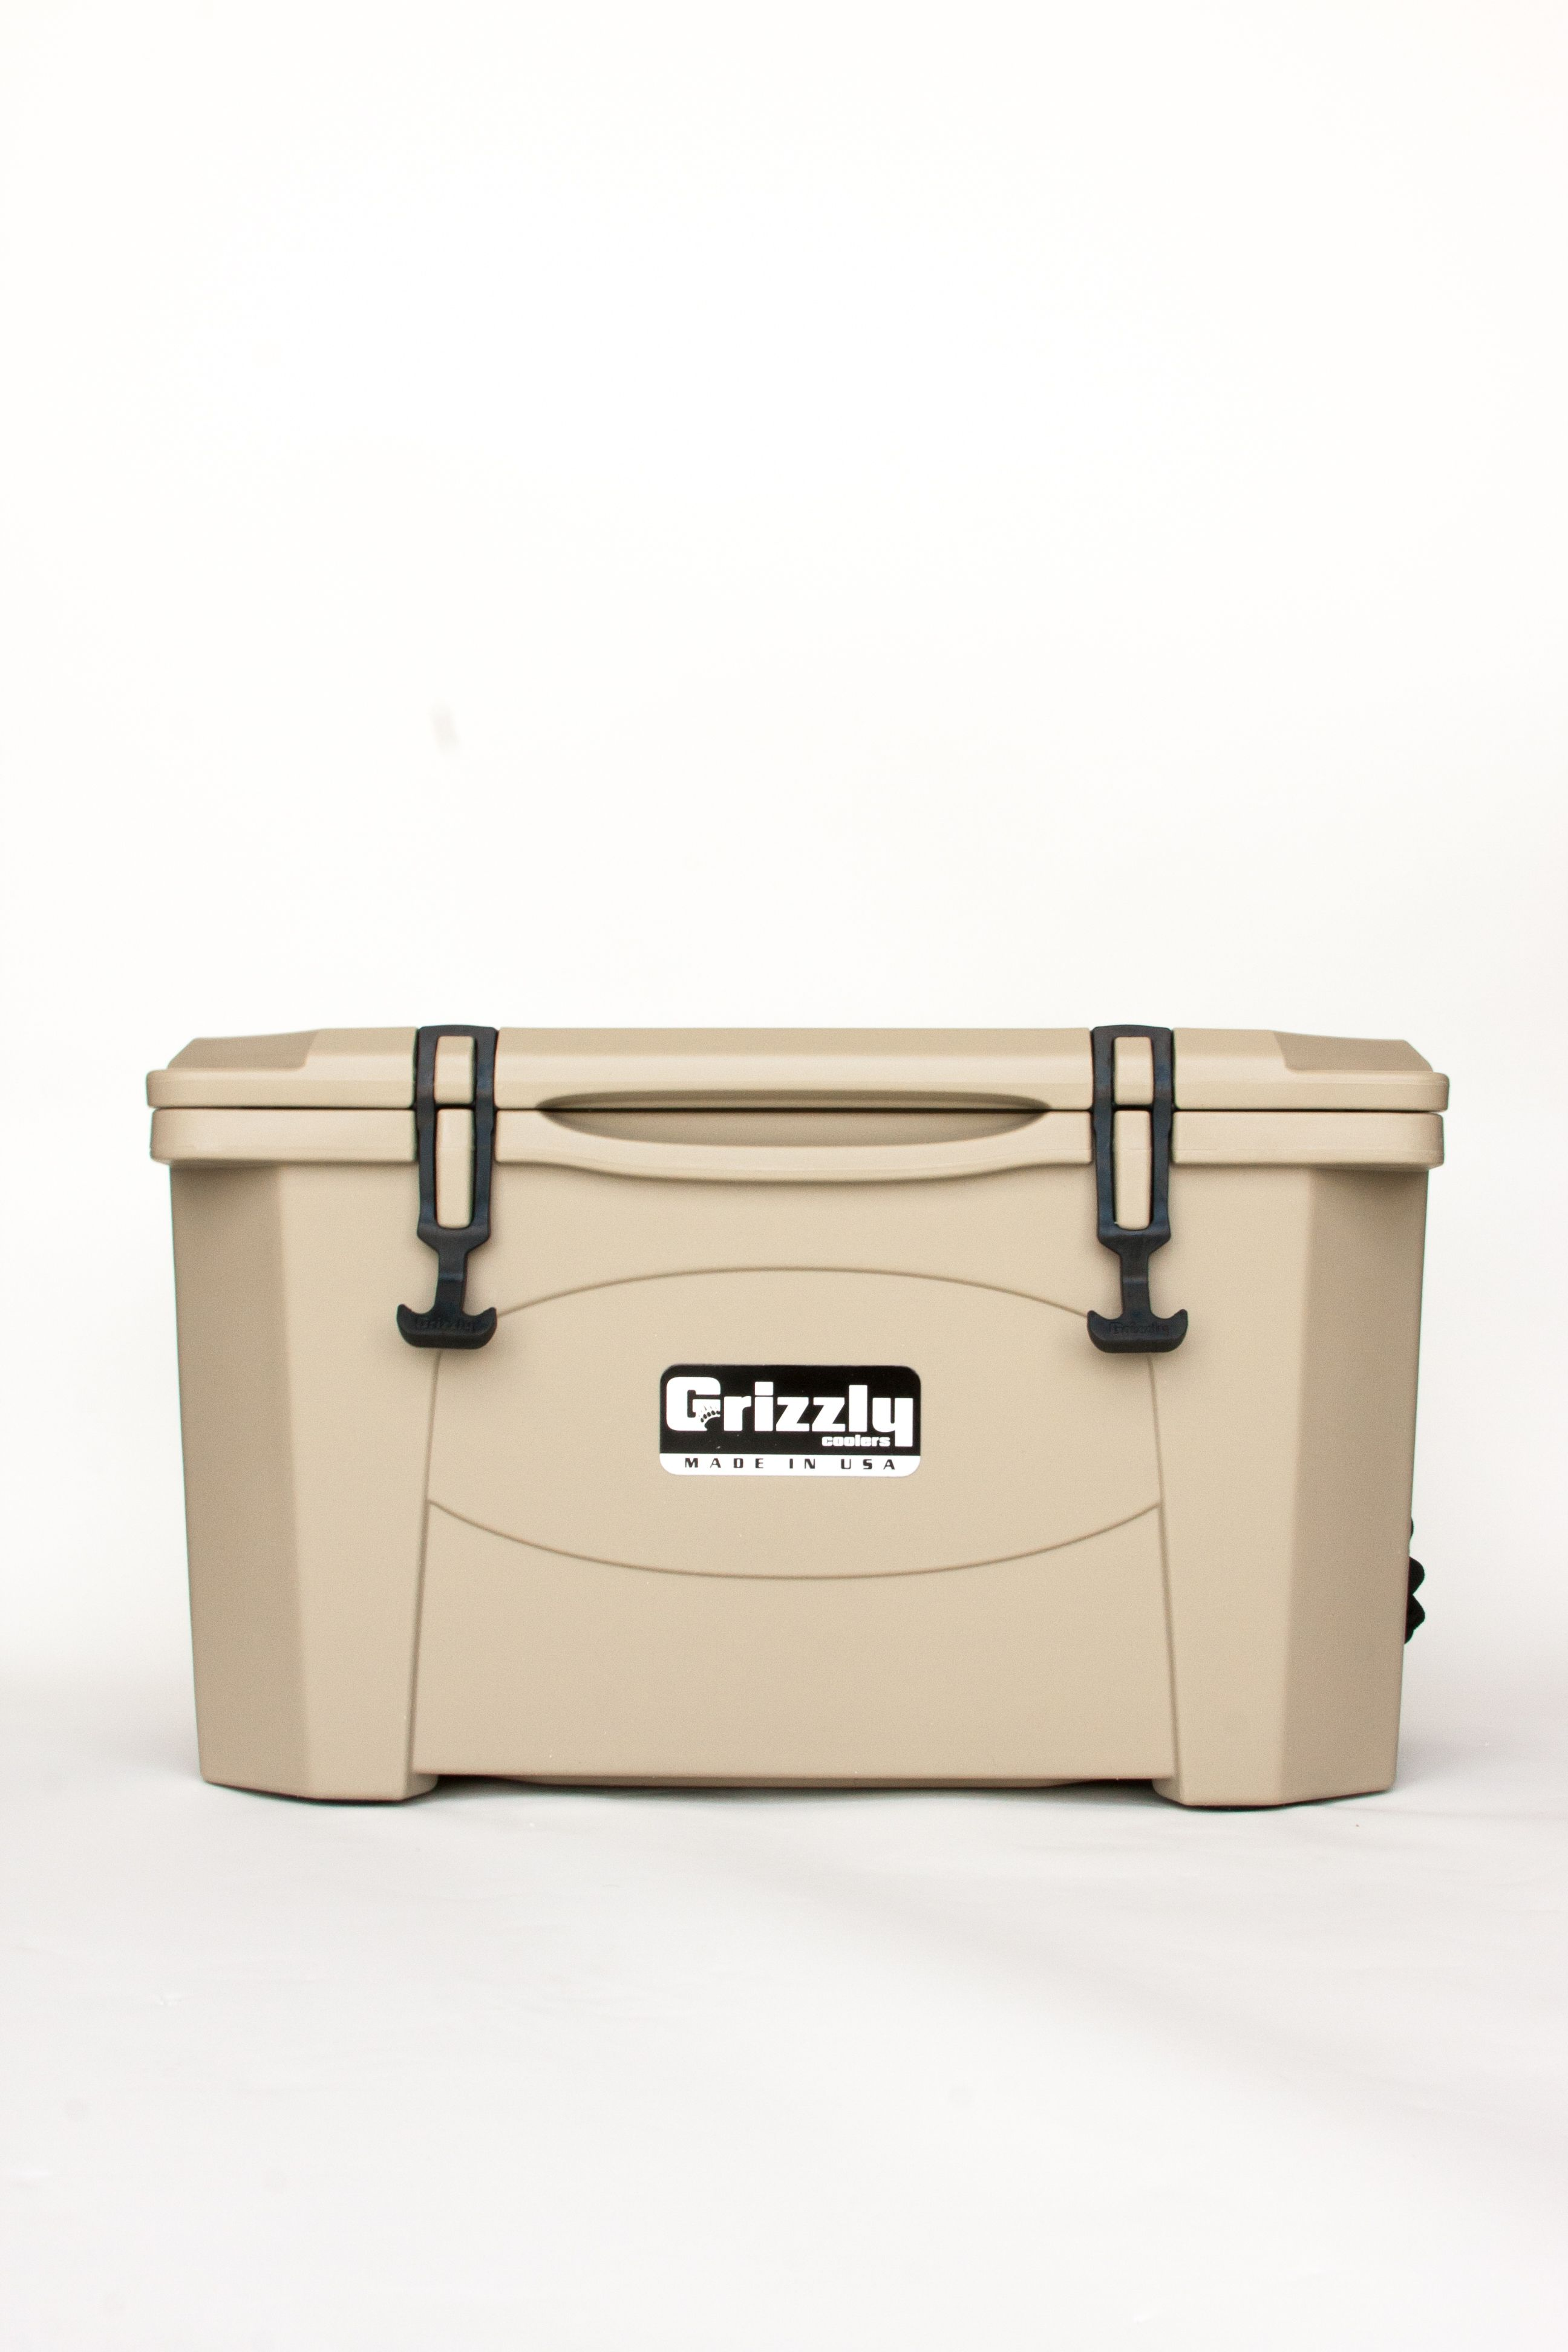 Grizzly 40 Quart Cooler – Tan/Tan